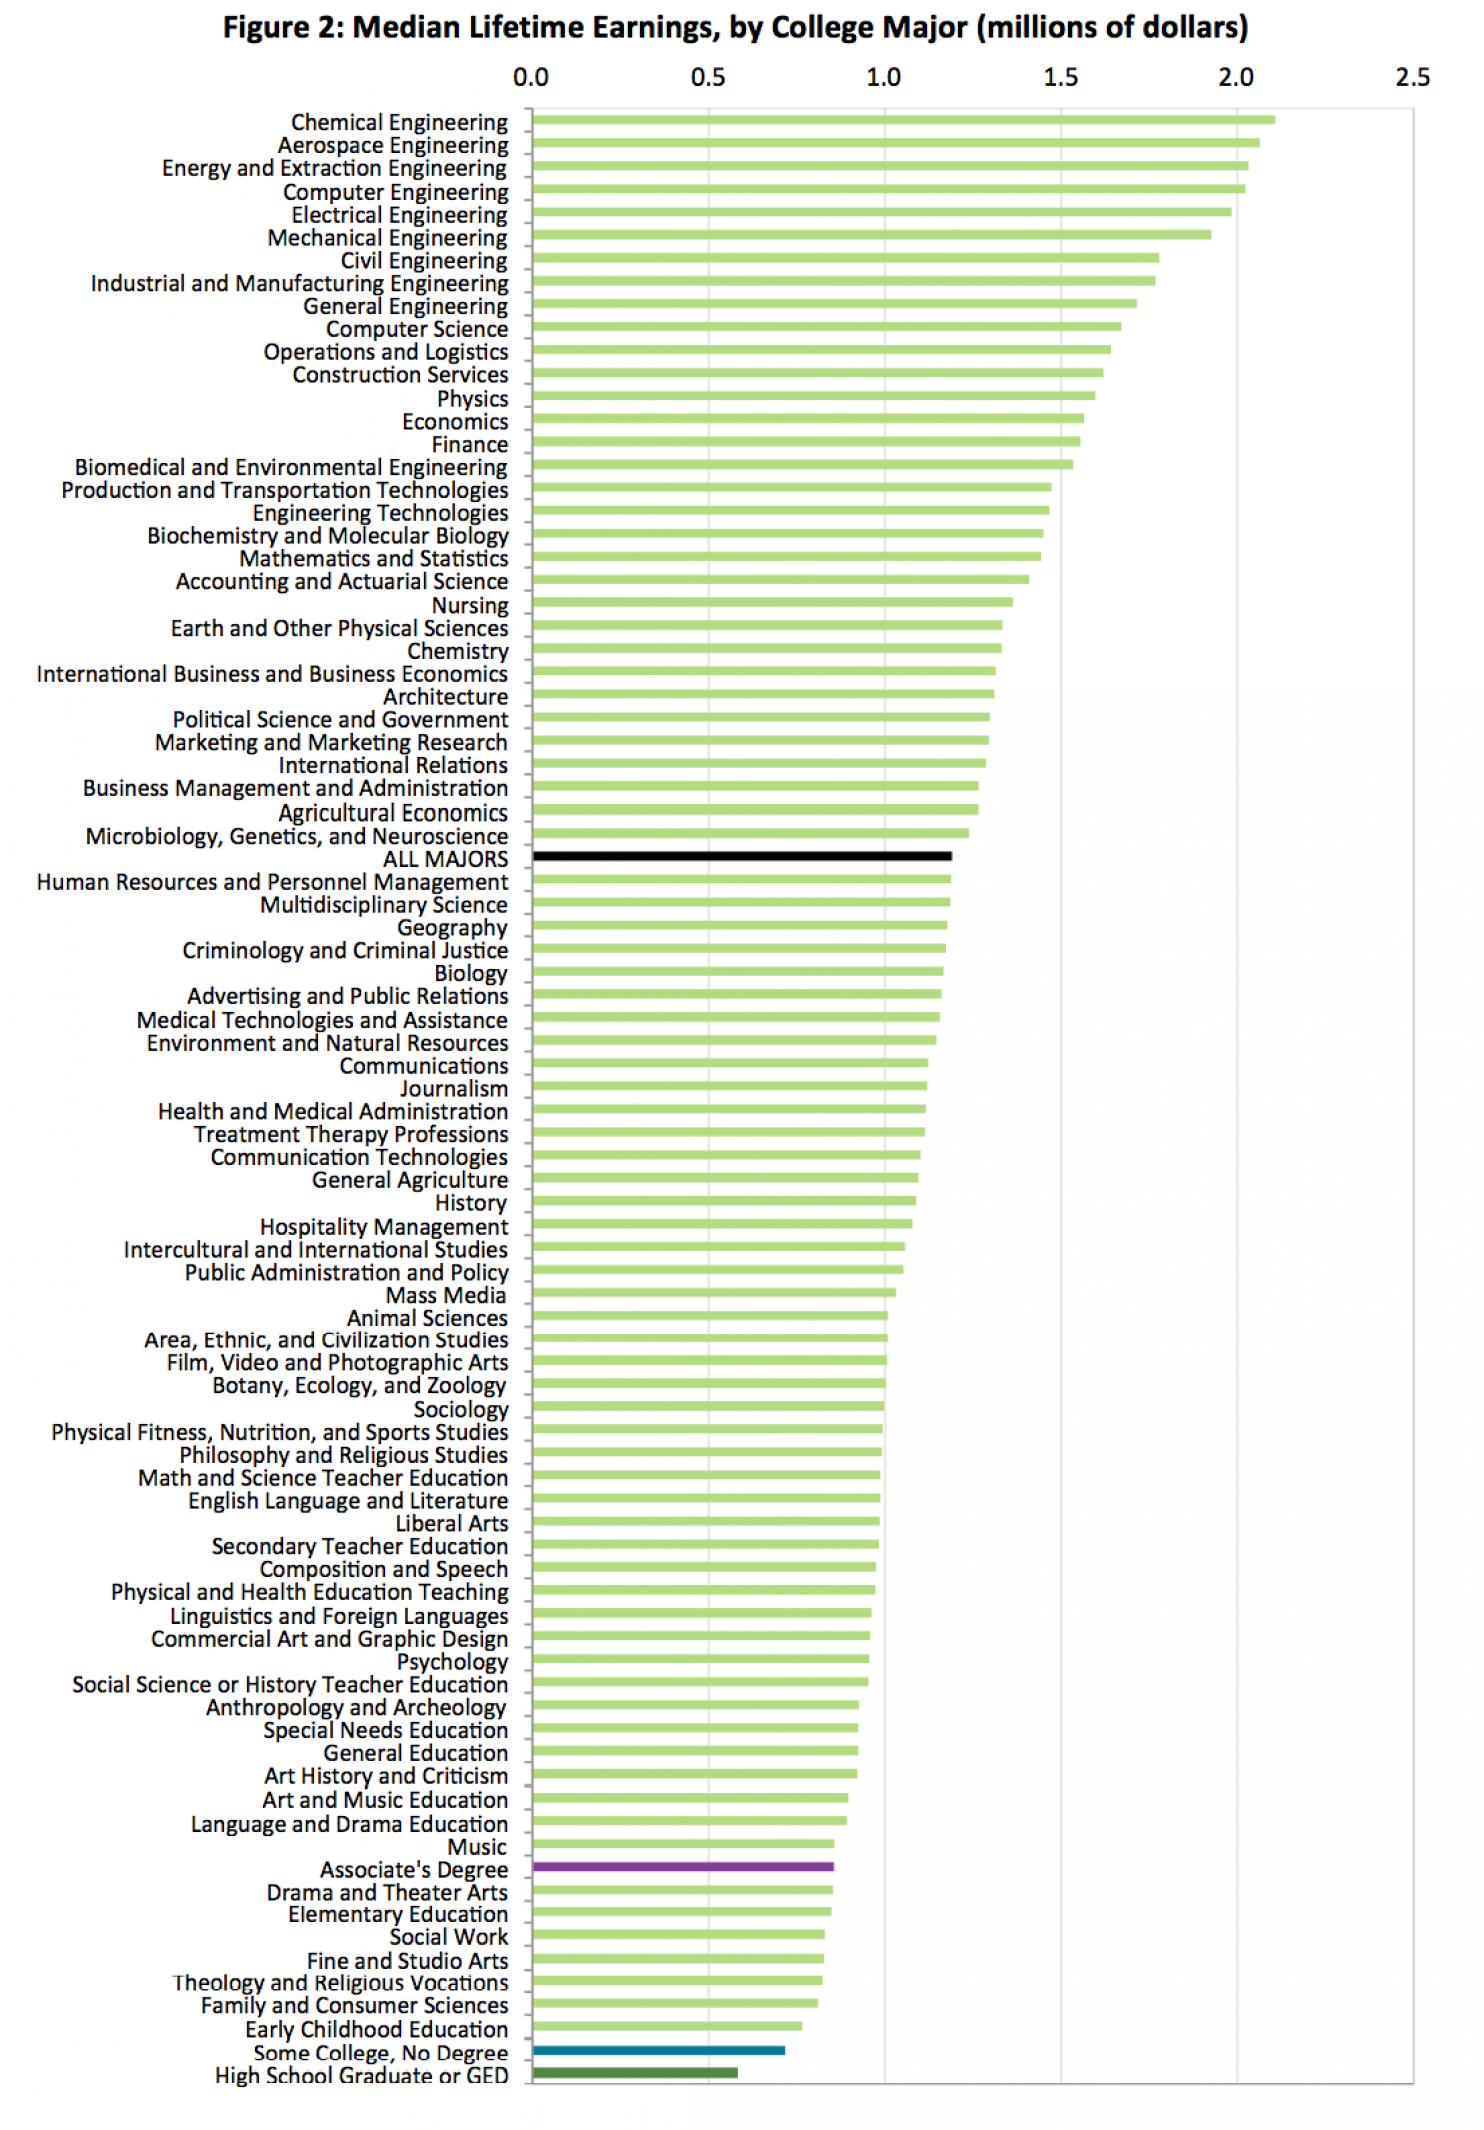 want proof college is worth it? look at this list of the highest